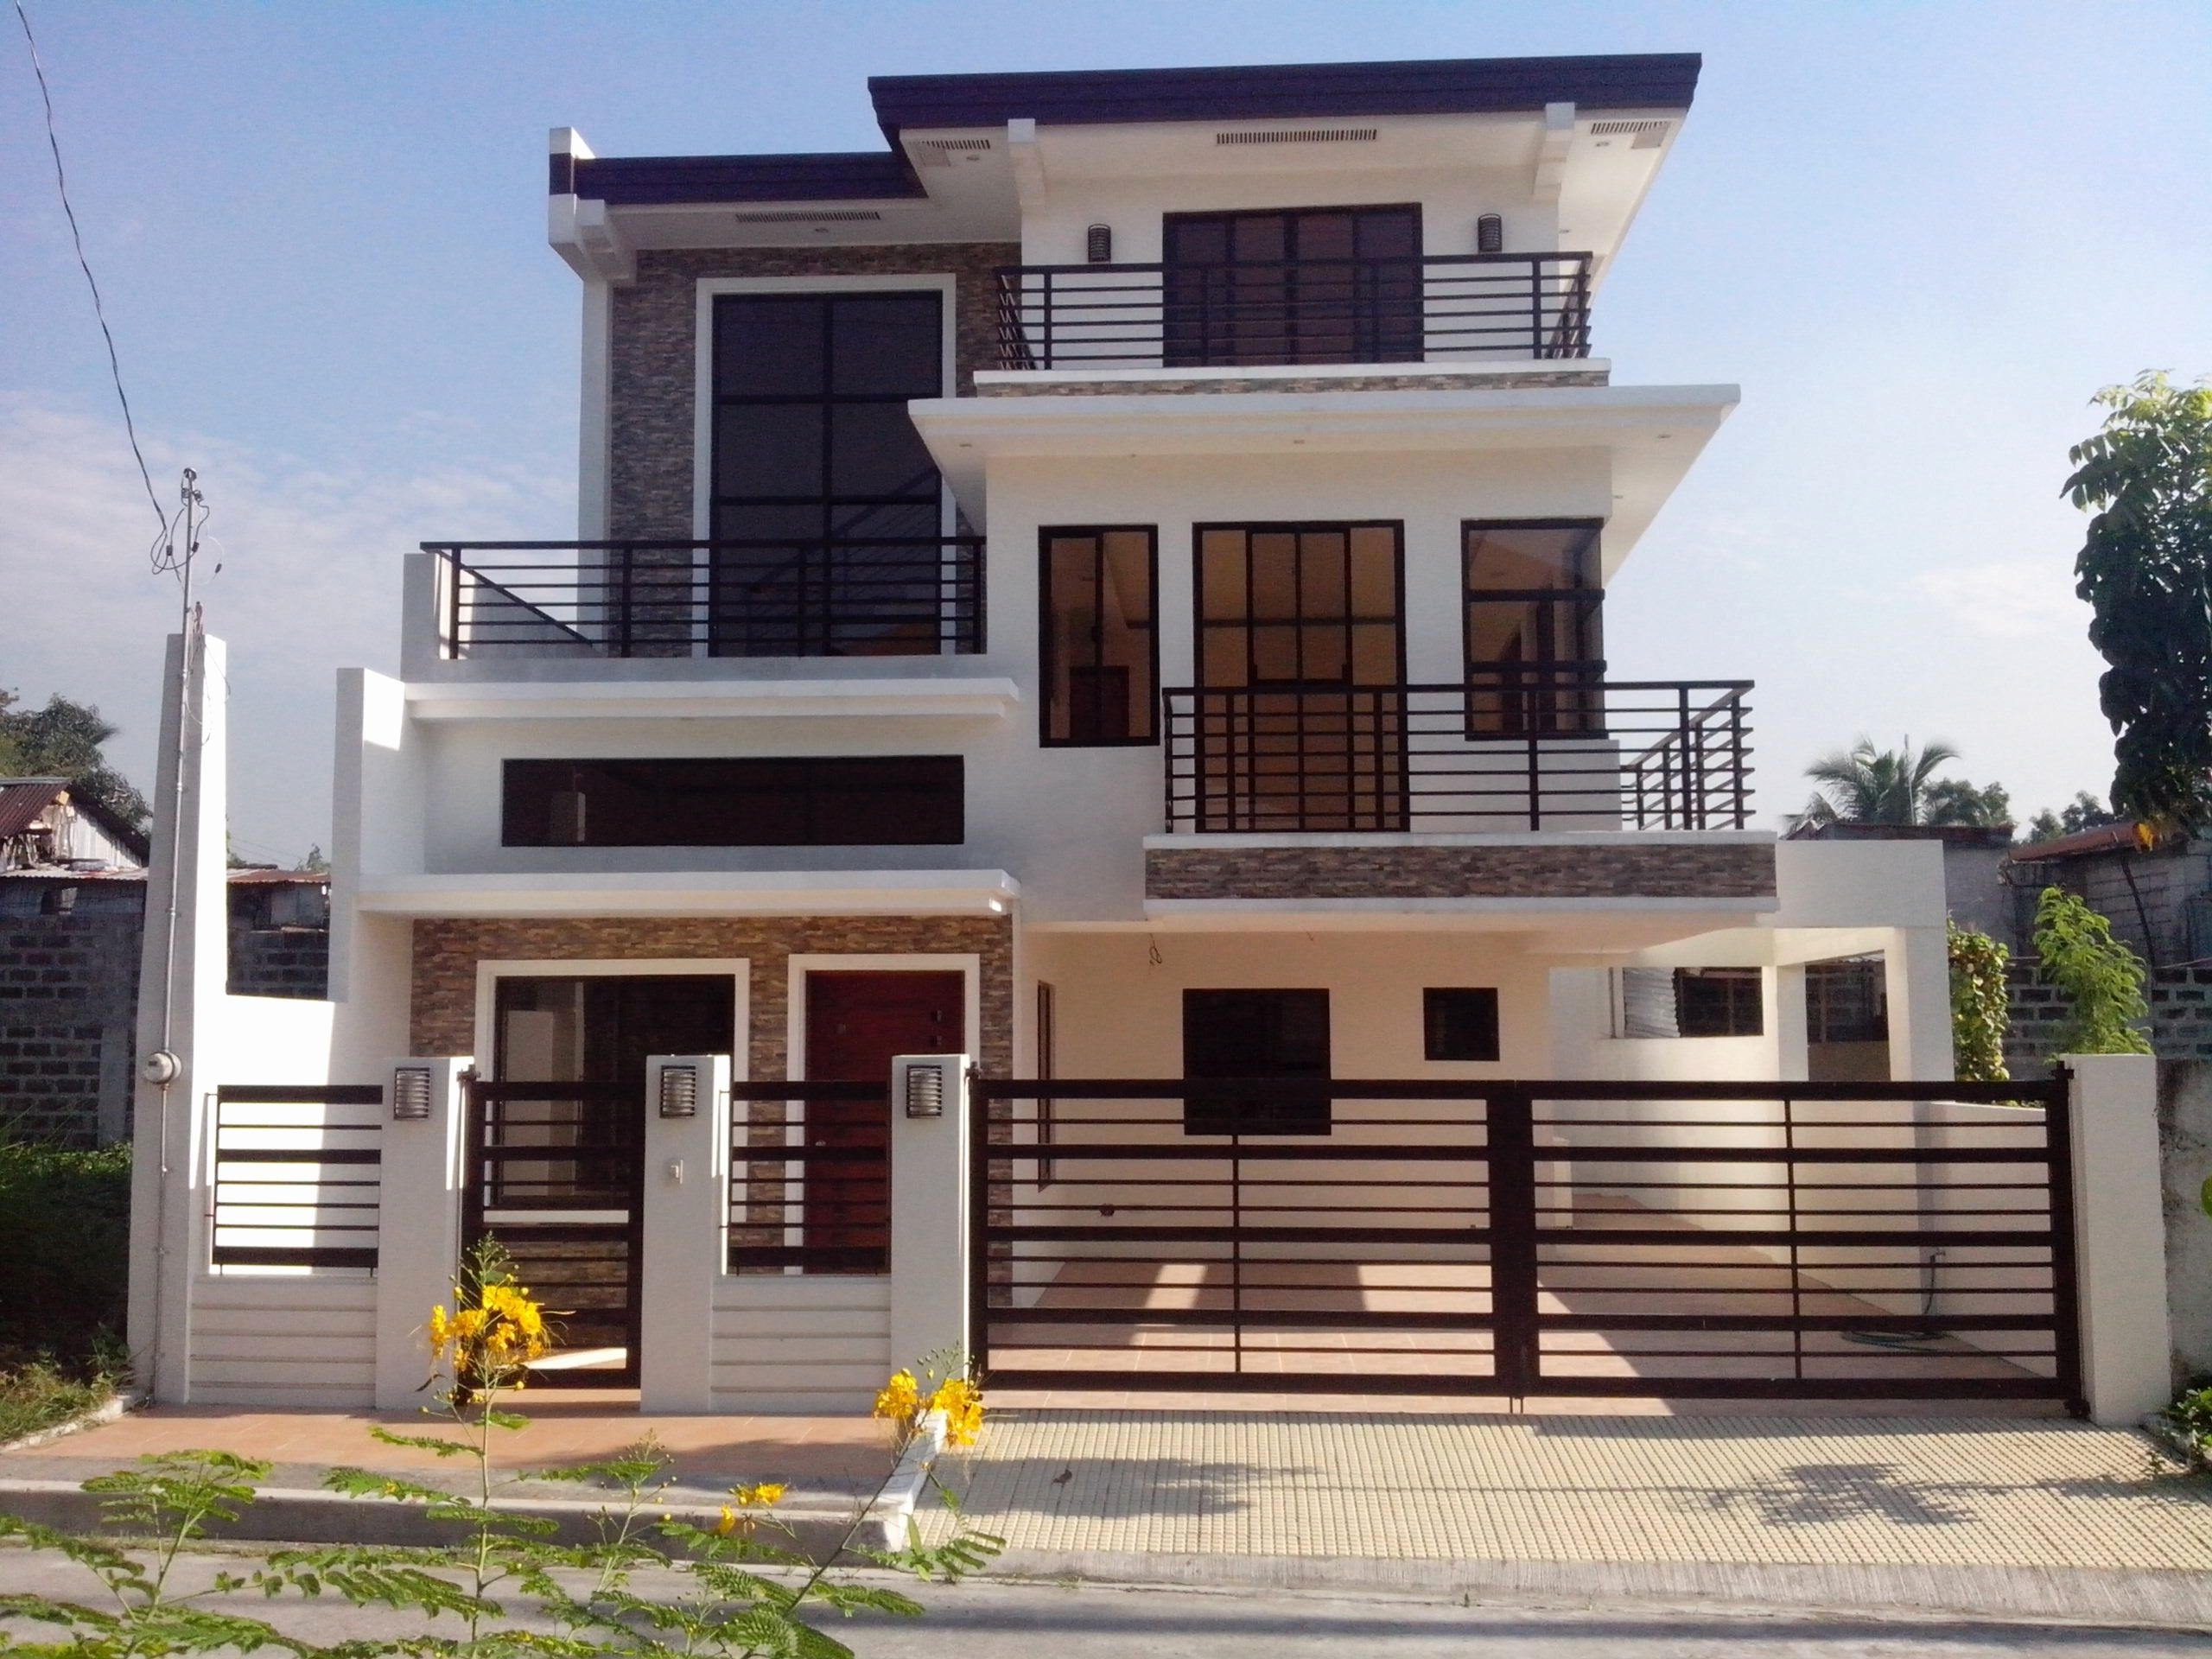 Pin On Houses 30+ Apartment Design Philippines Ideas